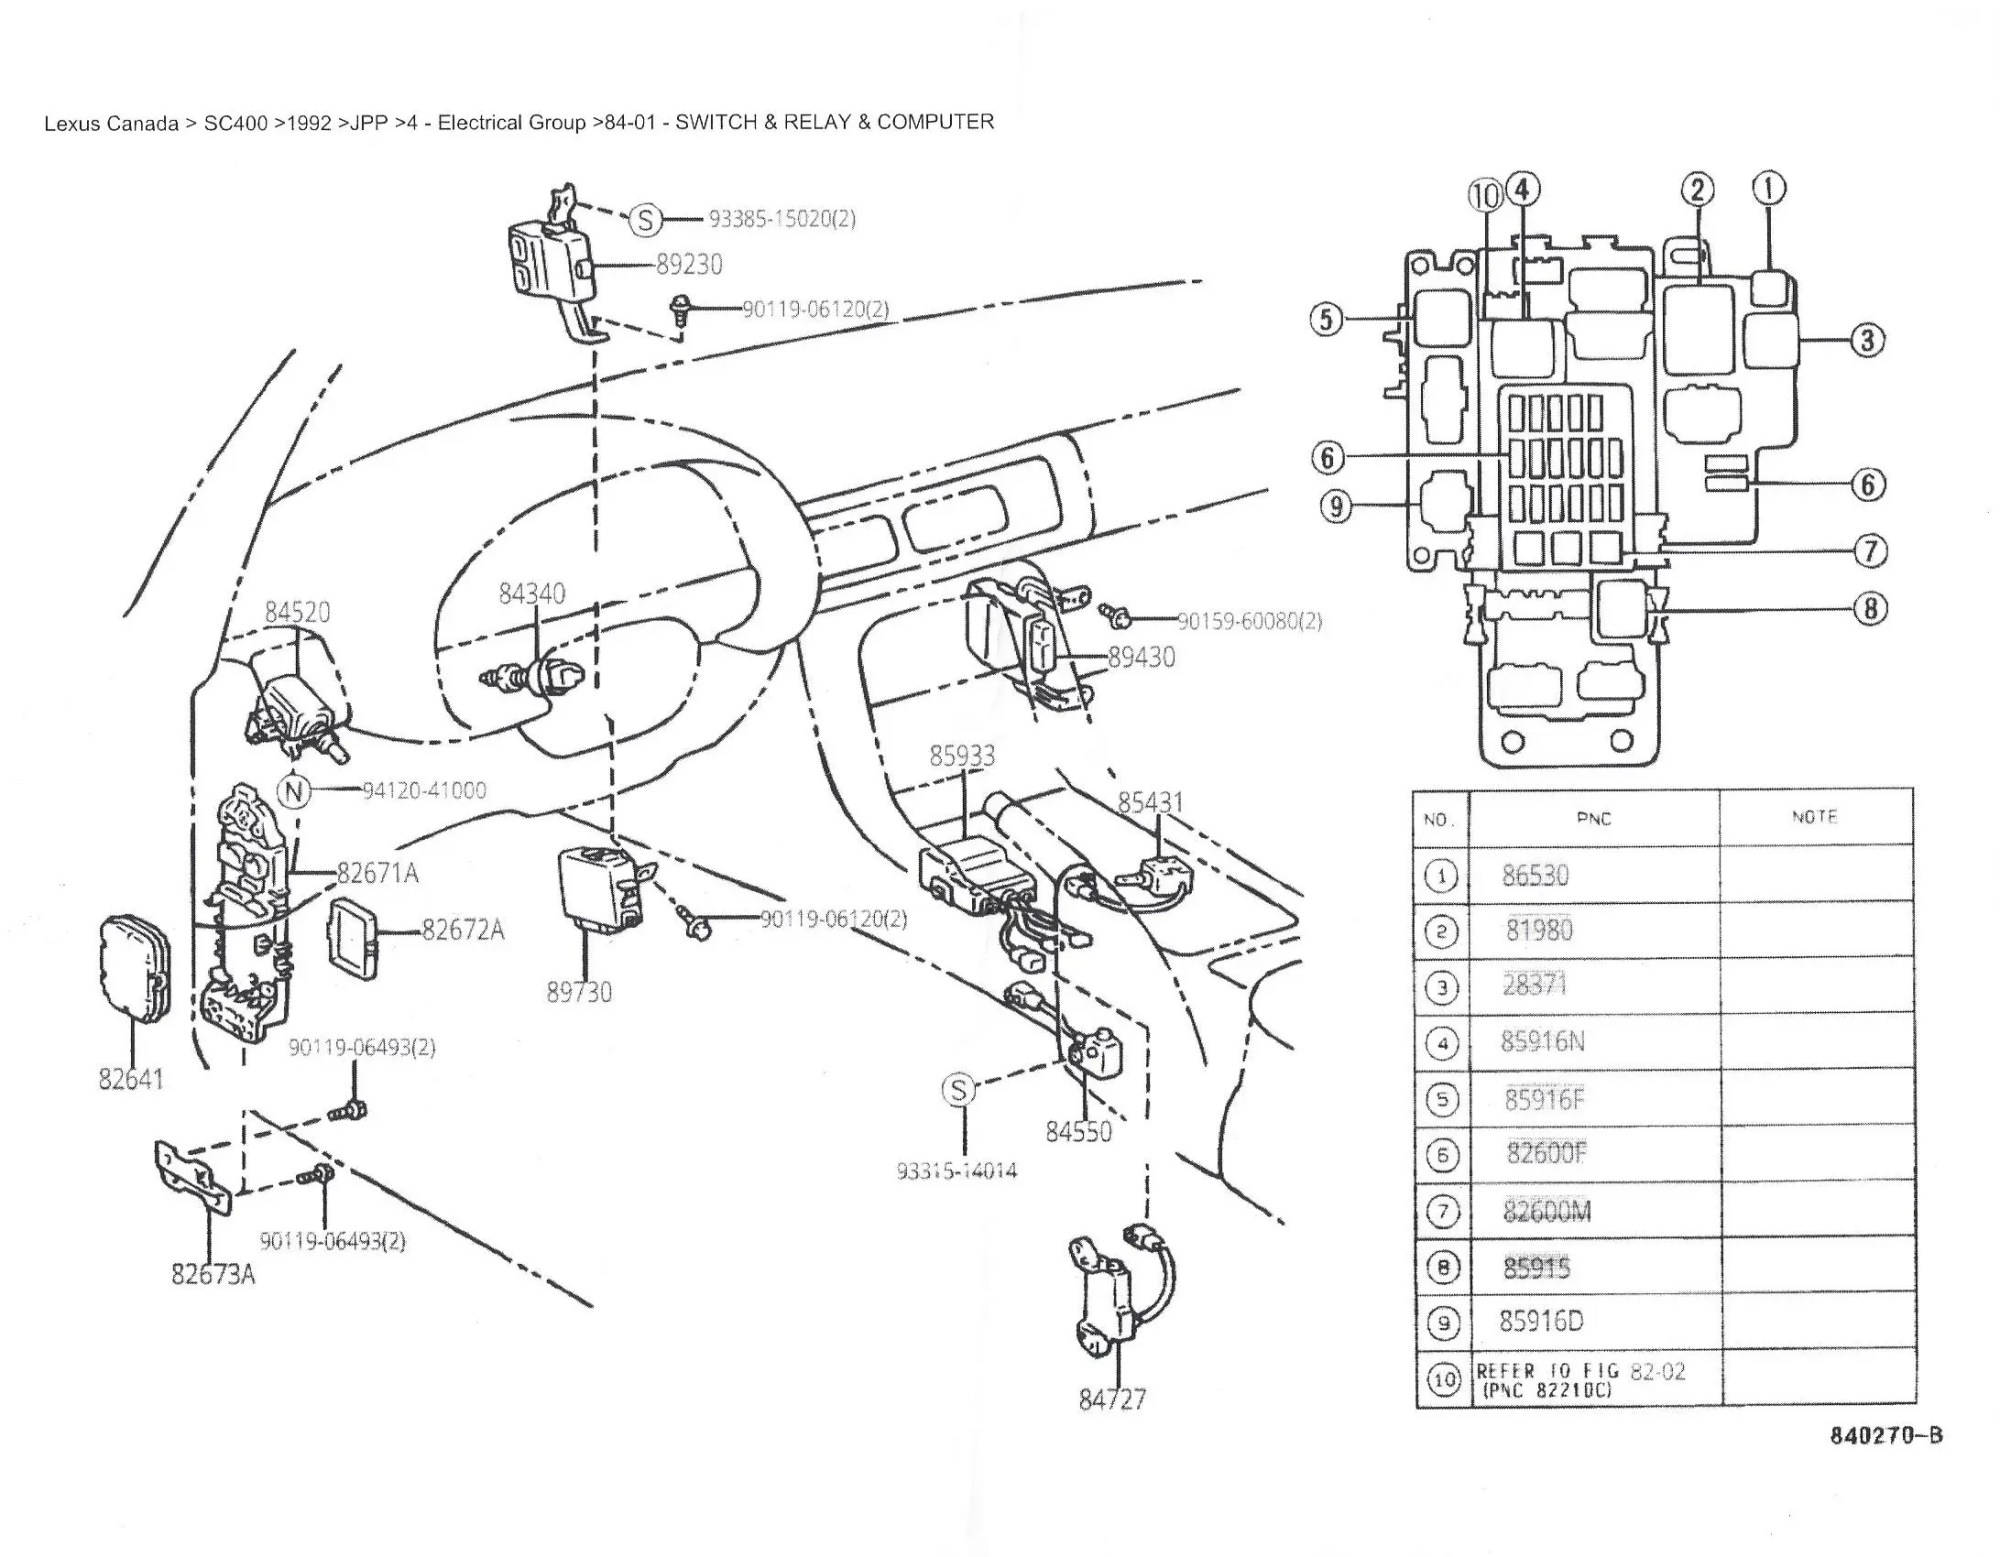 hight resolution of lexus sc300 fuse box location wiring diagram query 1996 lexus sc300 fuse box diagram lexus sc300 fuse box location